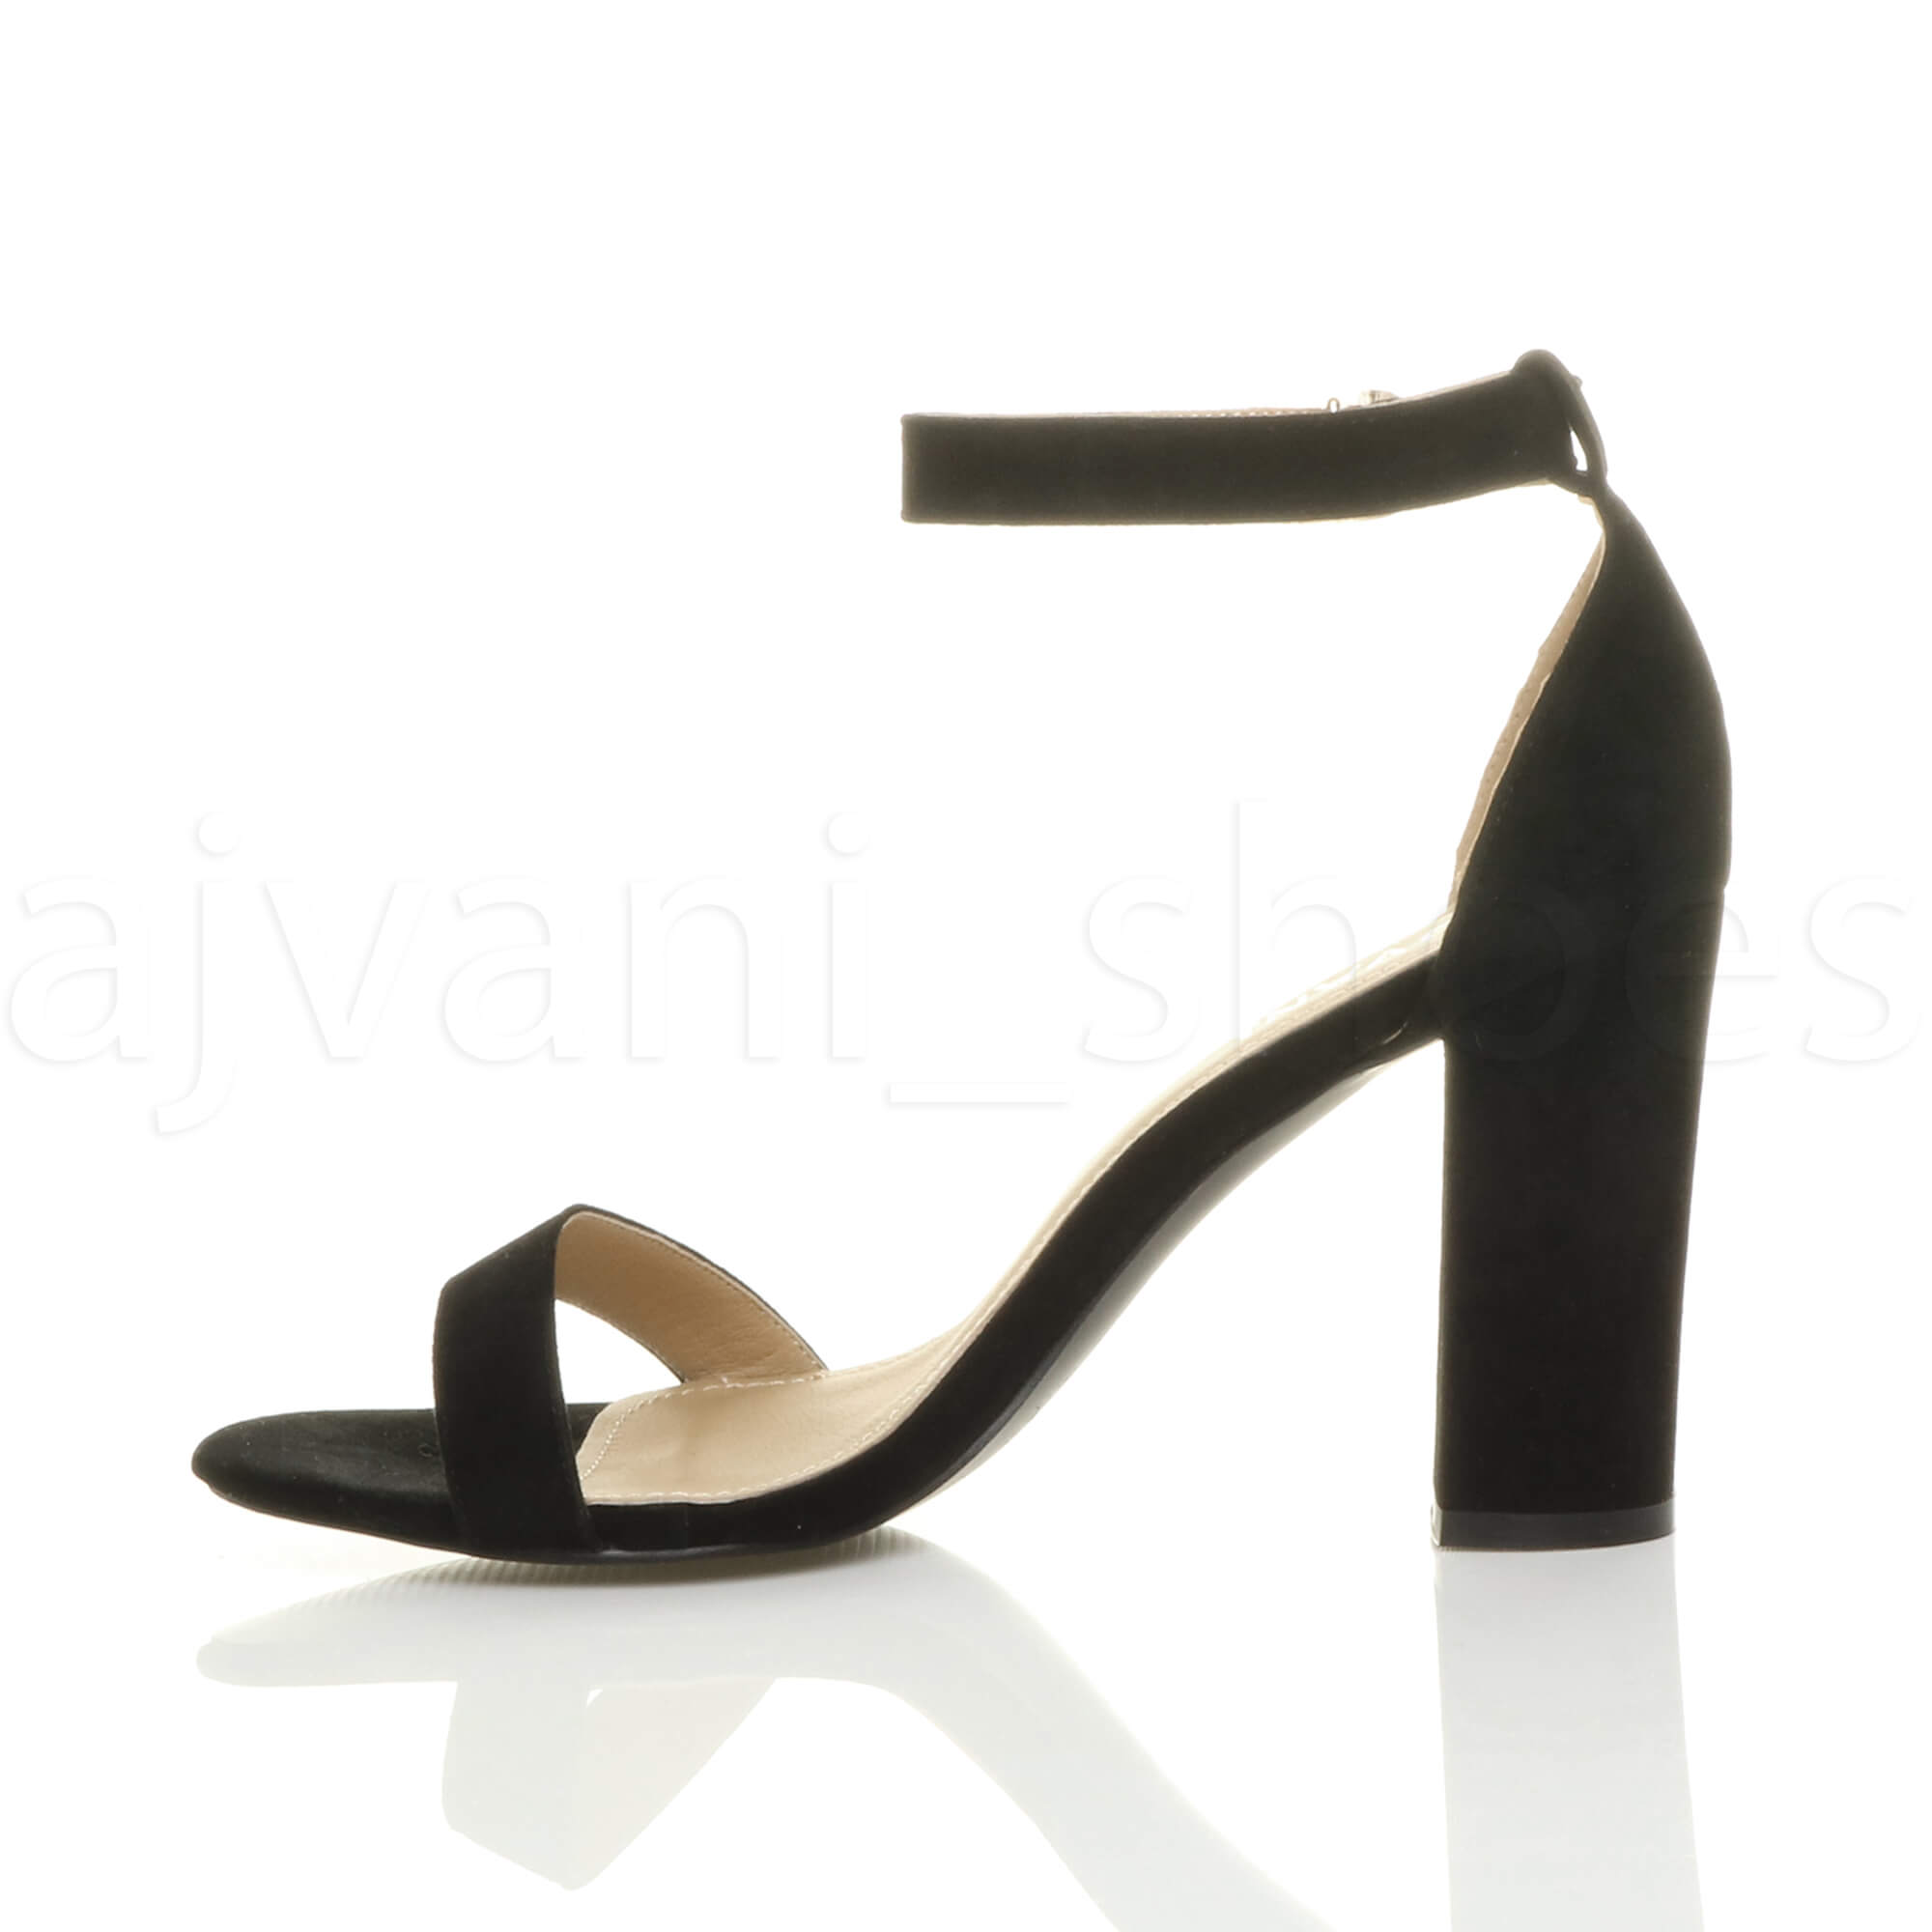 WOMENS-LADIES-BLOCK-HIGH-HEEL-ANKLE-STRAP-PEEP-TOE-STRAPPY-SANDALS-SHOES-SIZE thumbnail 39